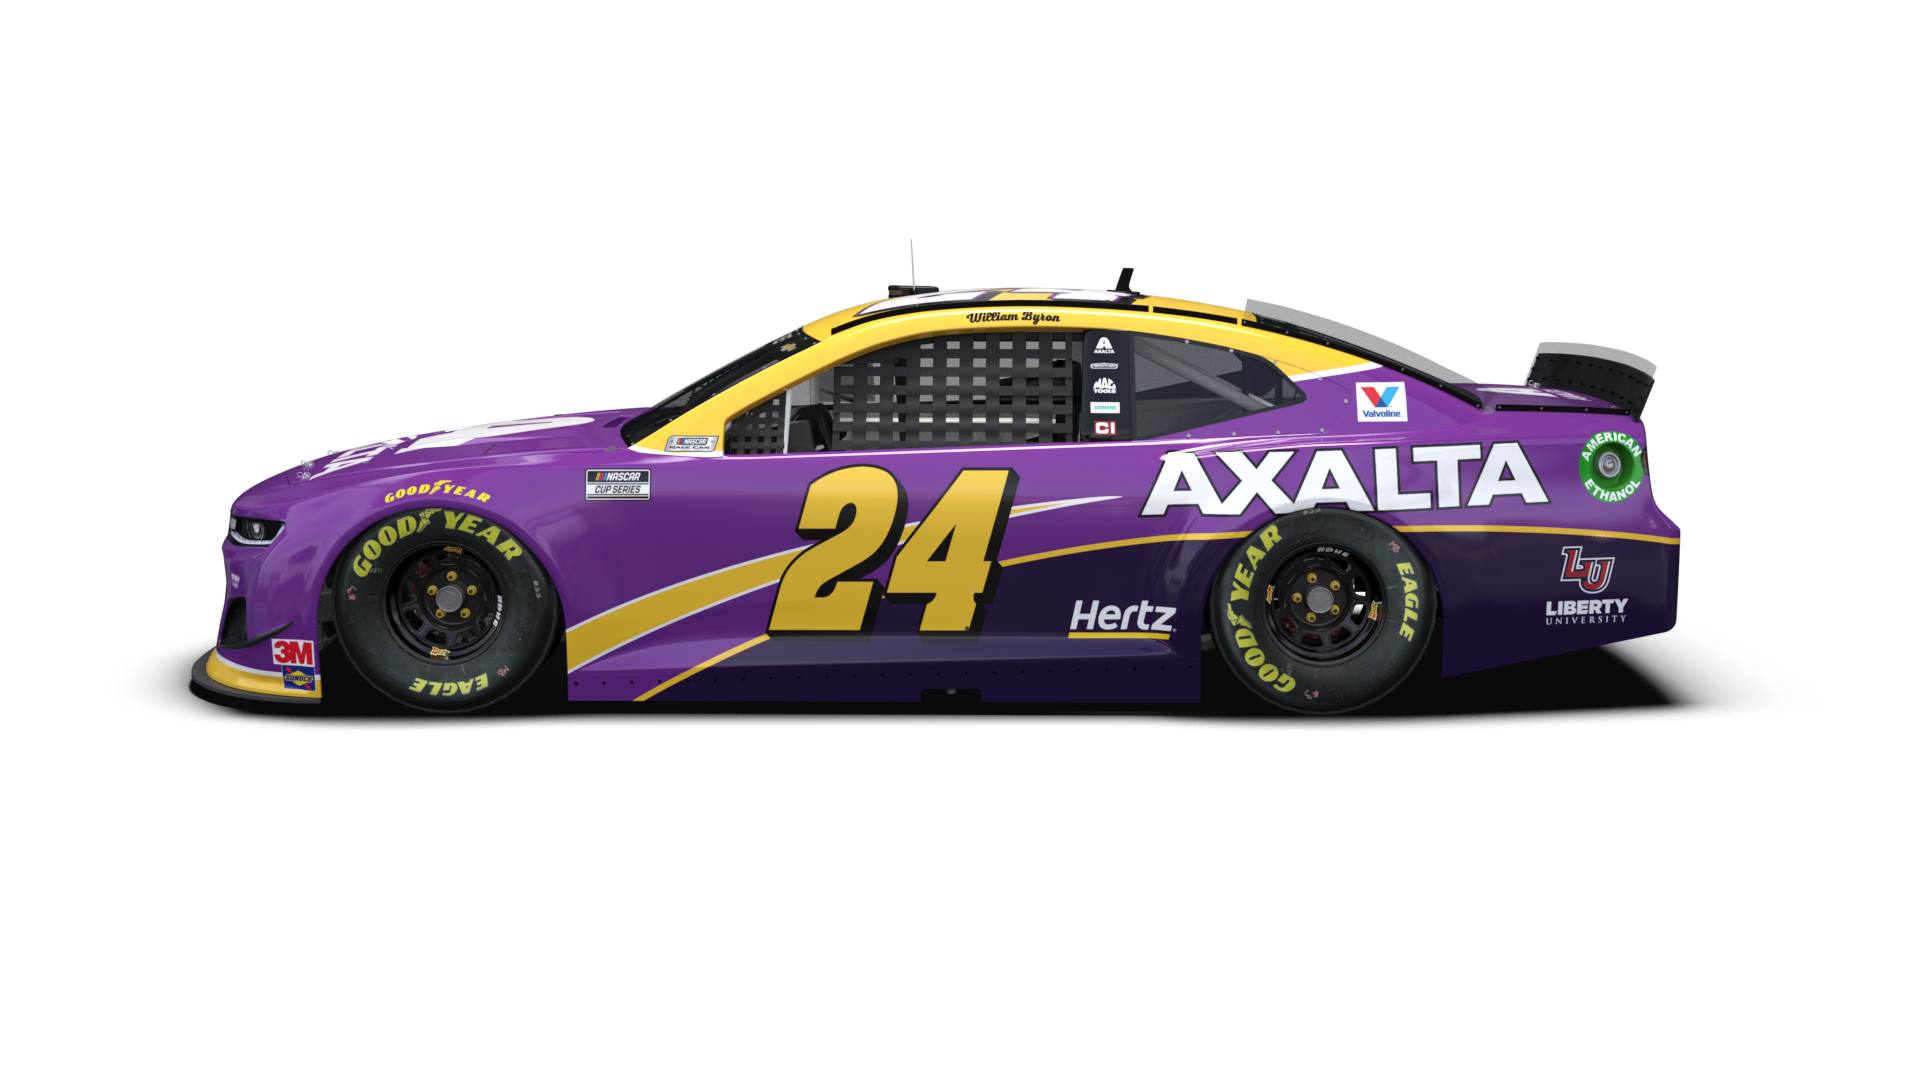 Special No 24 Axalta Tribute Car To Benefit A Favorite Kobe Bryant Charity Hendrick Motorsports